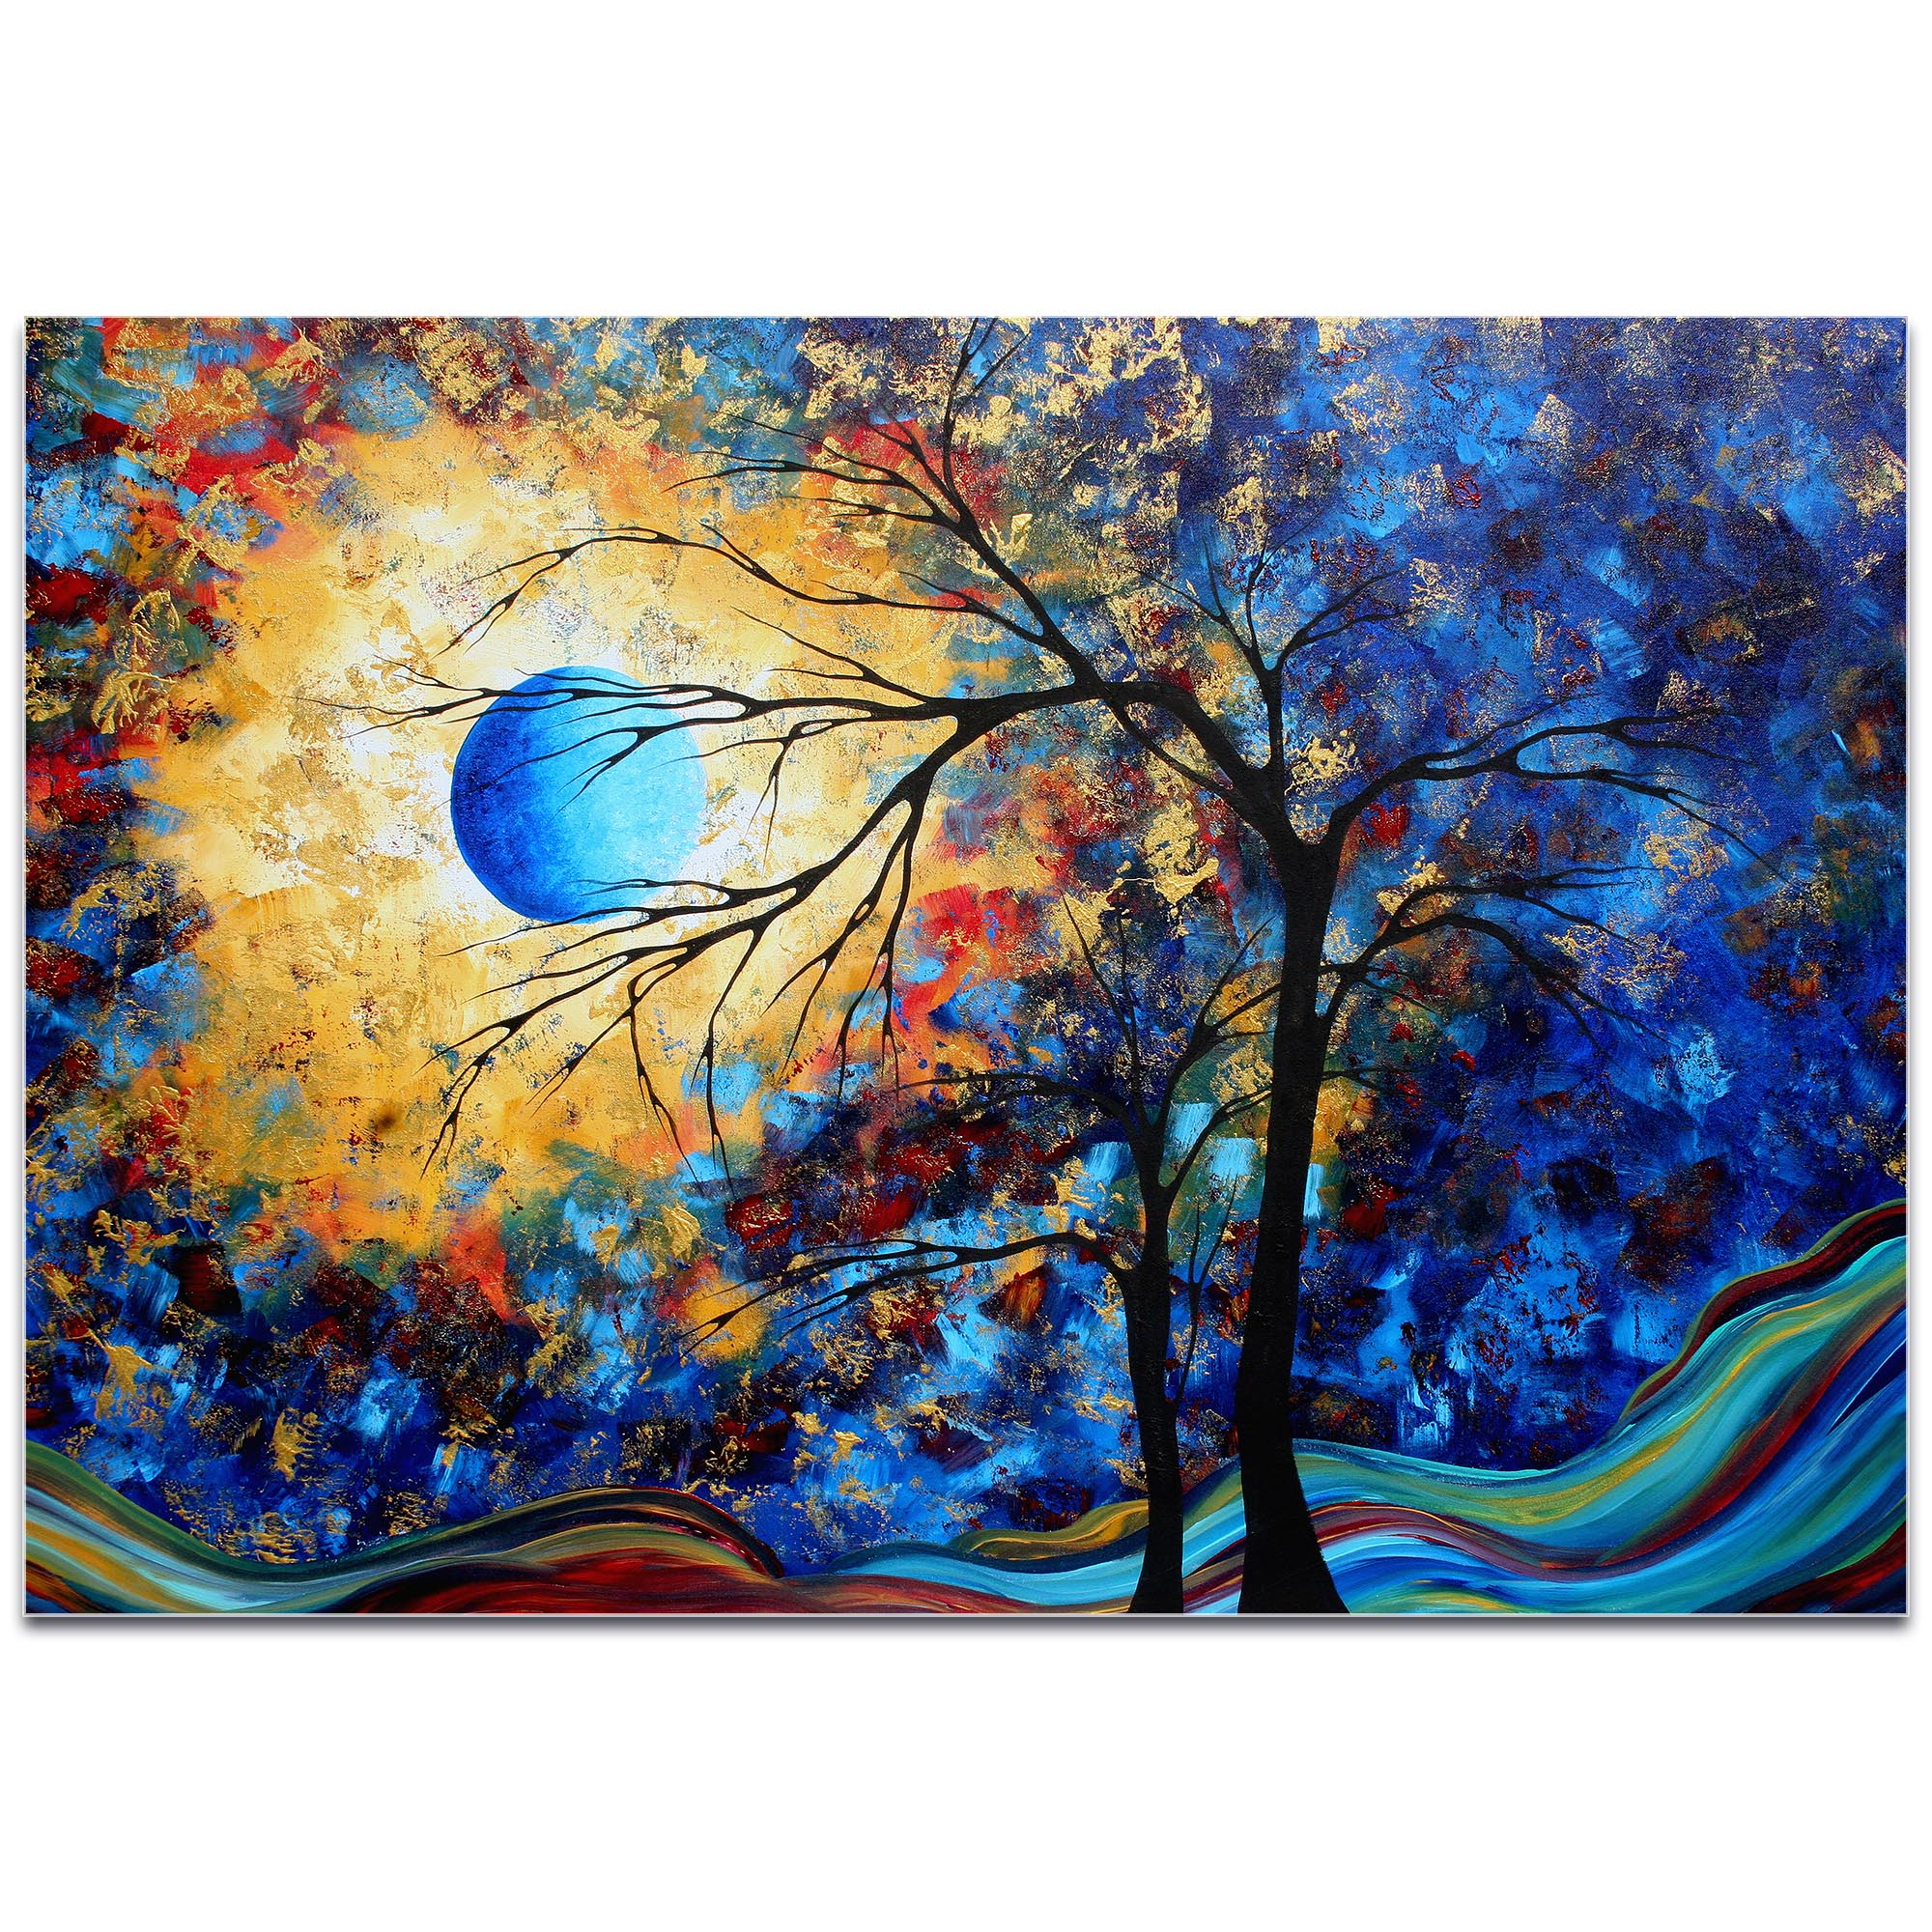 Landscape Painting 'Eye of the Universe' - Abstract Tree Art on Metal or Acrylic - Image 2